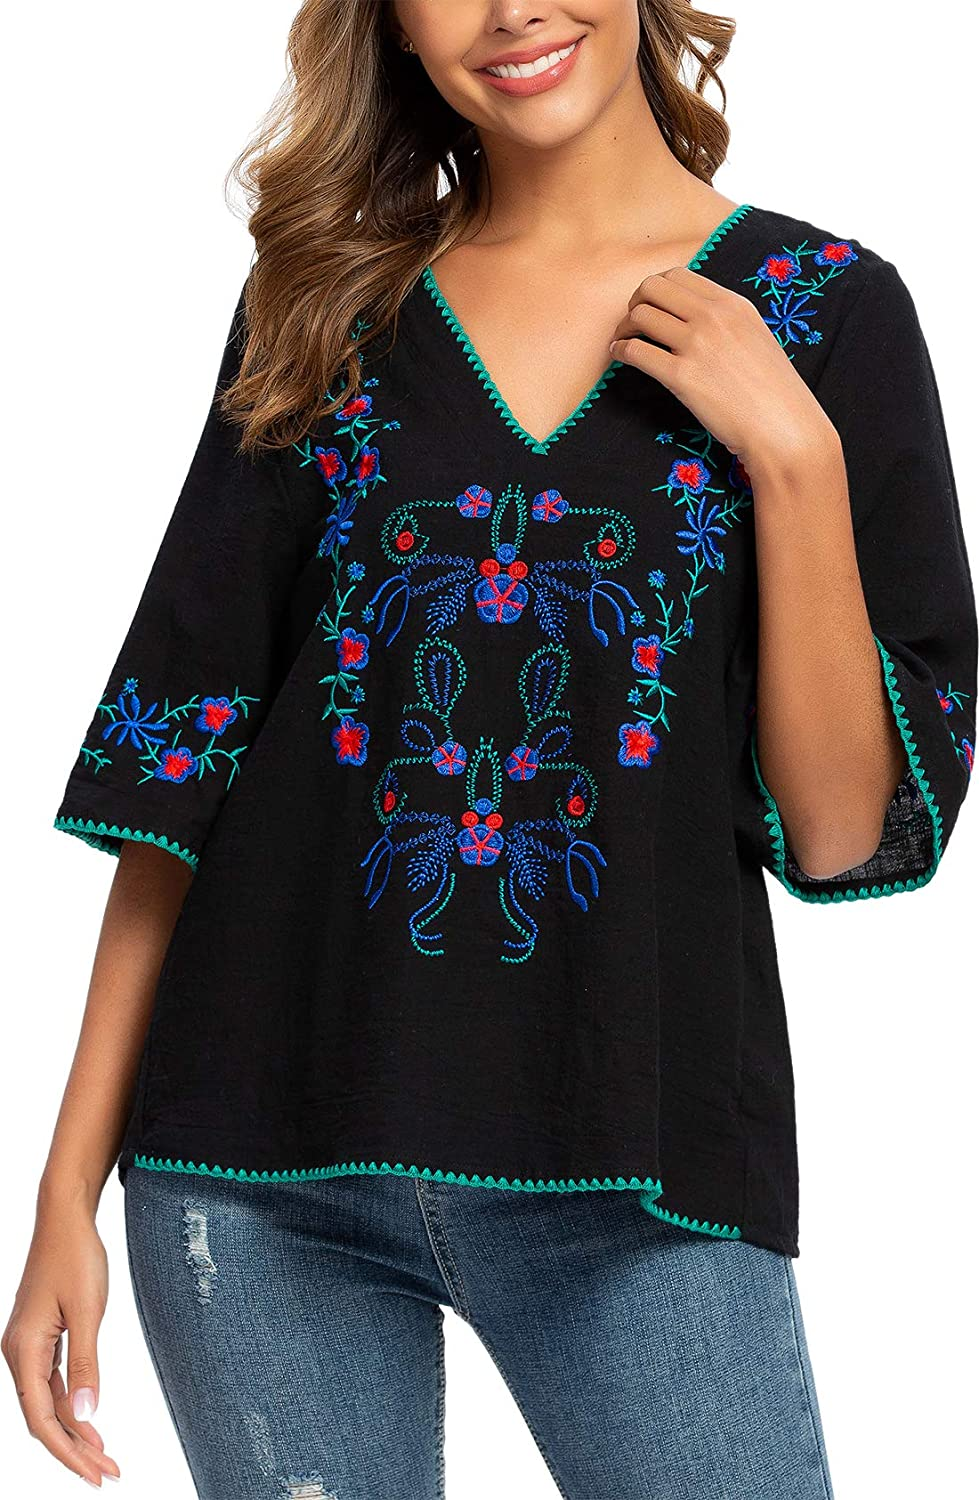 Mansy Womens Embroidery Mexican Bohemian Shirt Short Sleeve Ruffled Peasant Cotton Tops Tunic Blouses